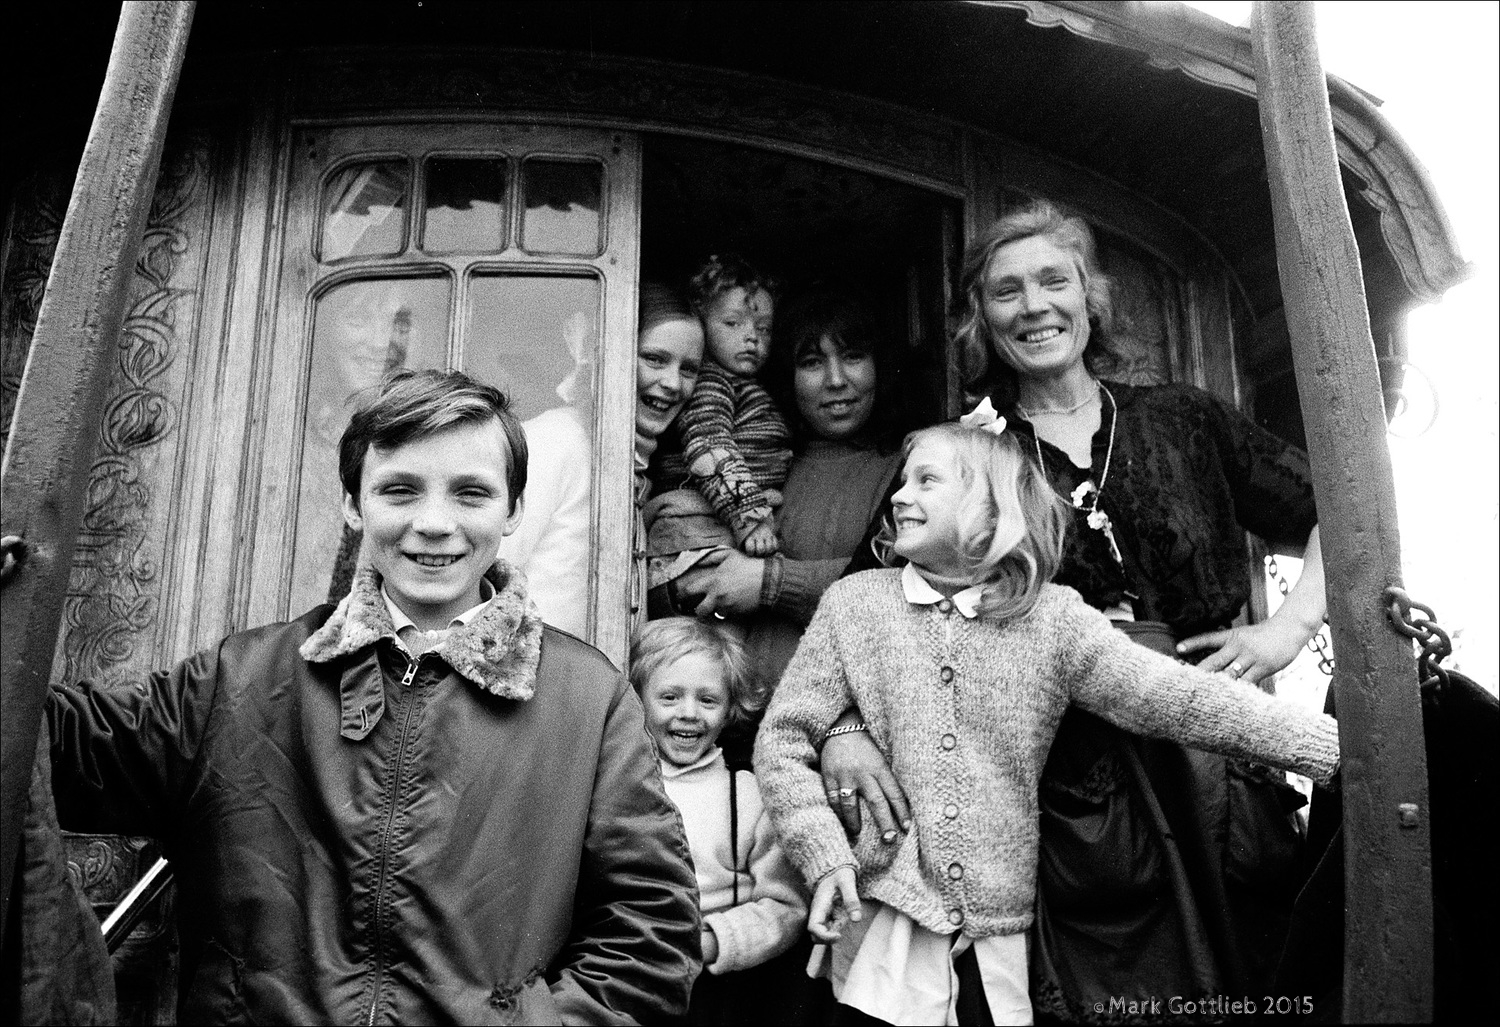 Gypsy Family, Grenoble, France 1971